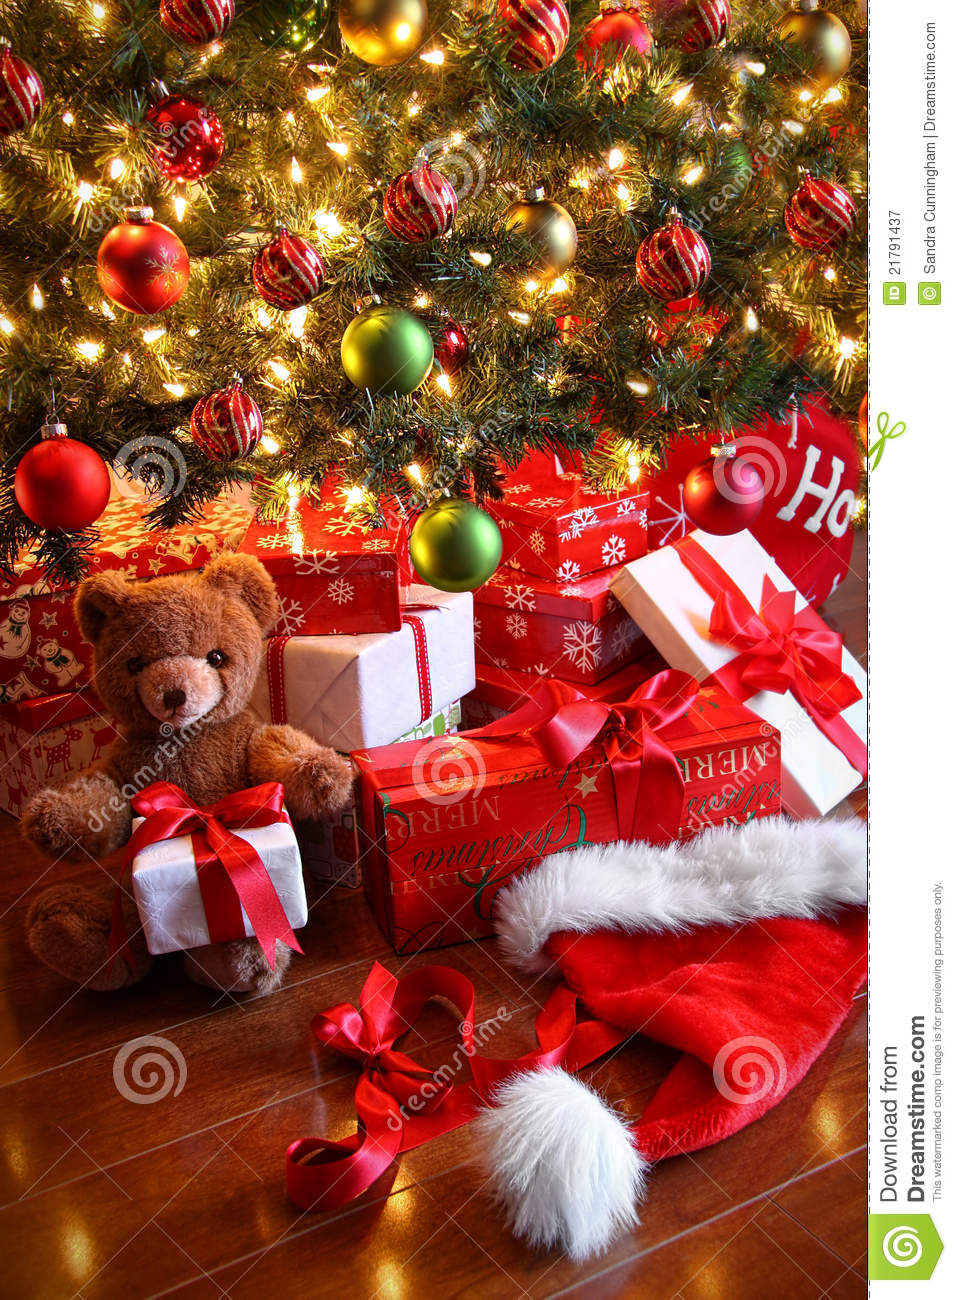 Gifts Under The Tree For Christmas Royalty Free Stock ...